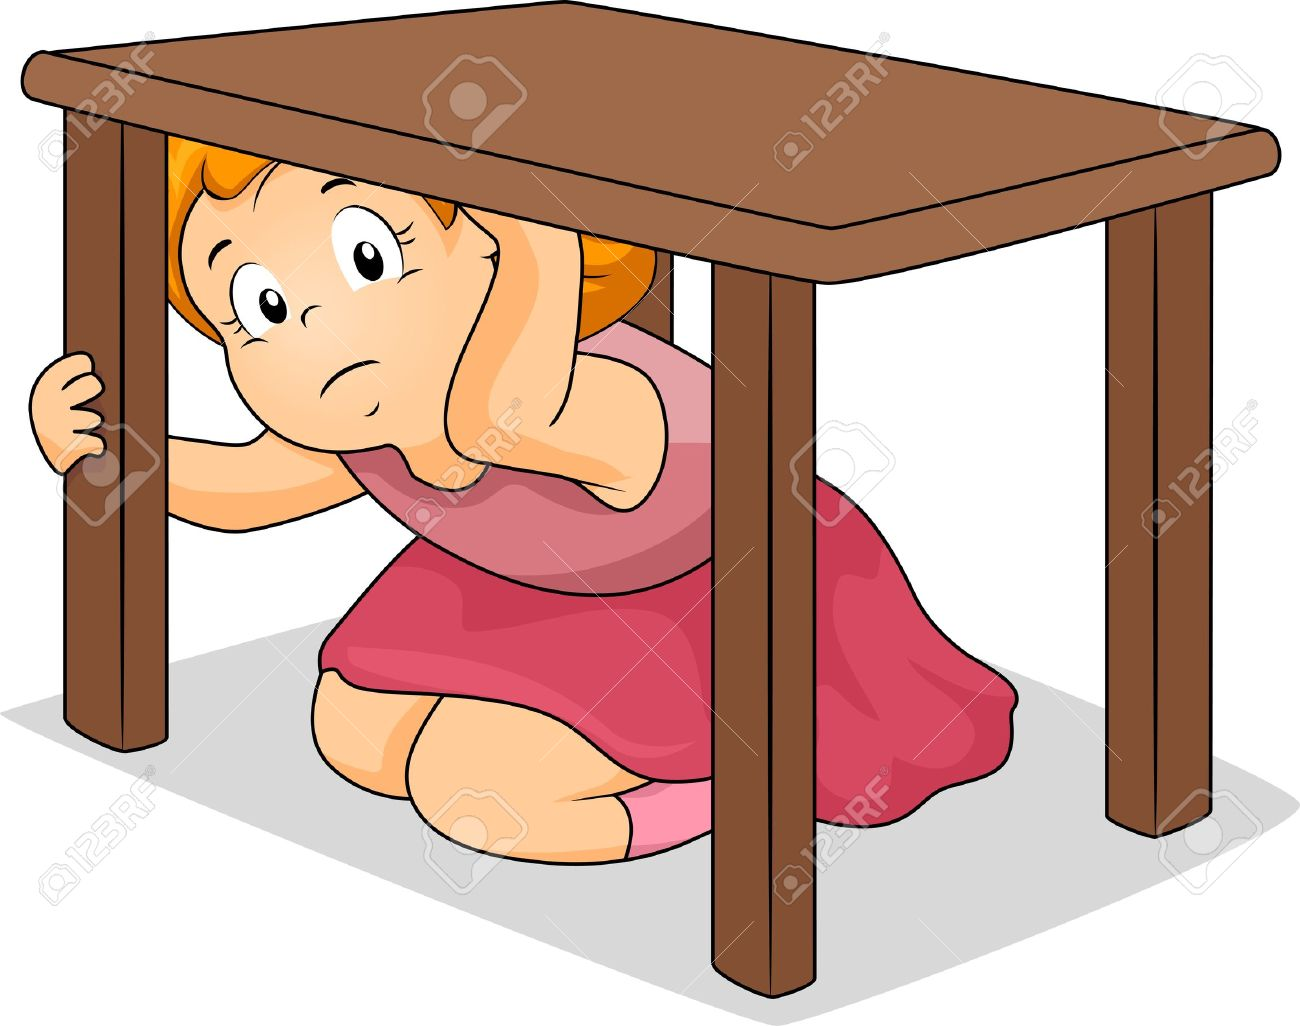 Earthquake drill clipart 3 » Clipart Station.